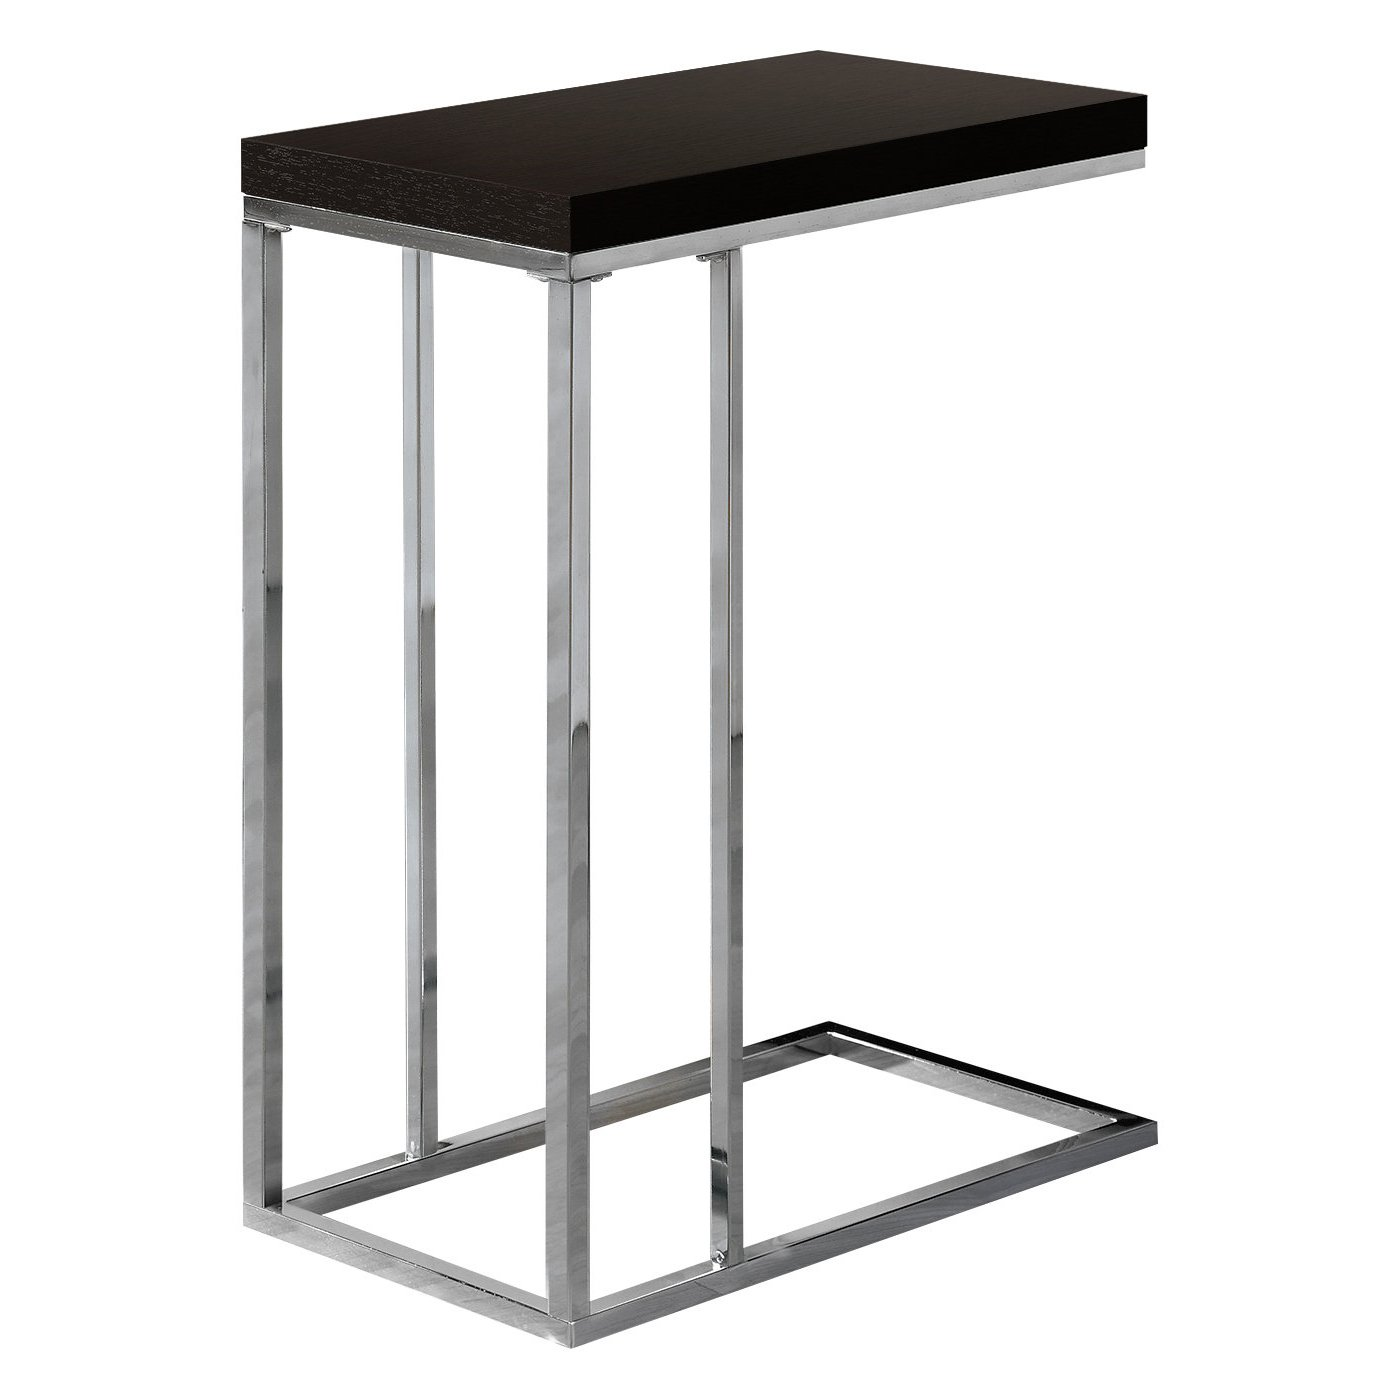 Monarch Specialties I 3007 Chrome Metal and Cappuccino Hollow Core Accent Side Table